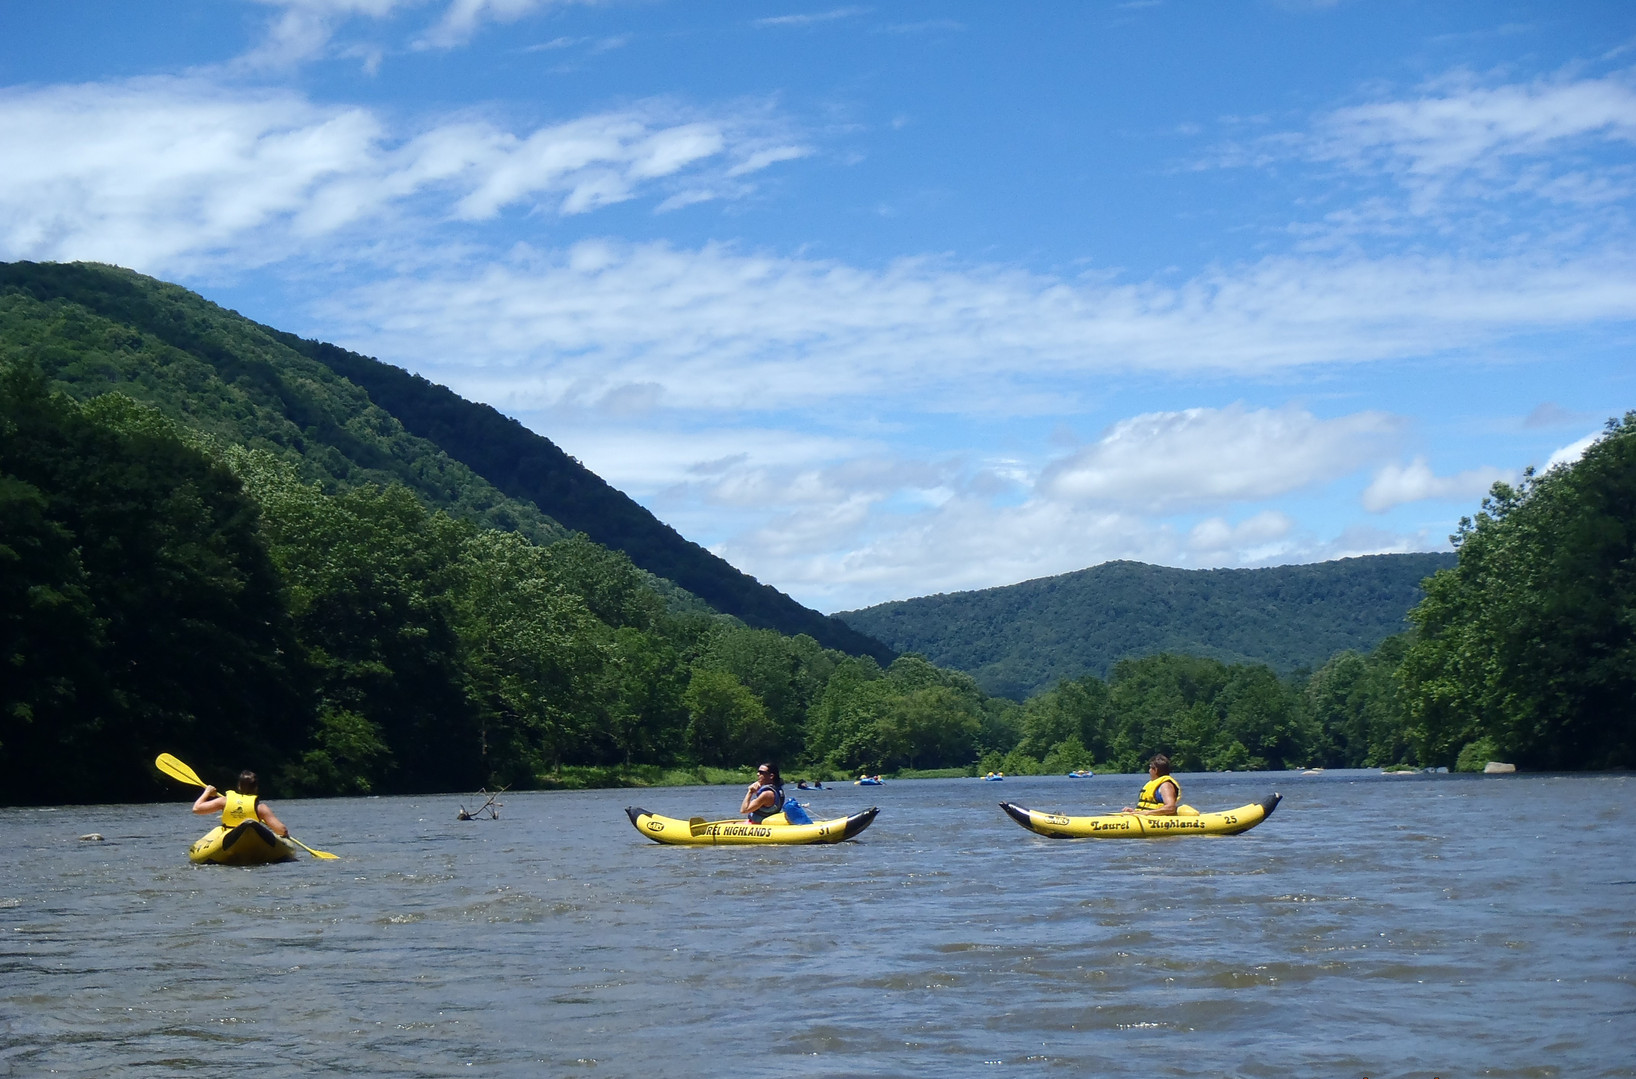 Rafting the Middle Yough